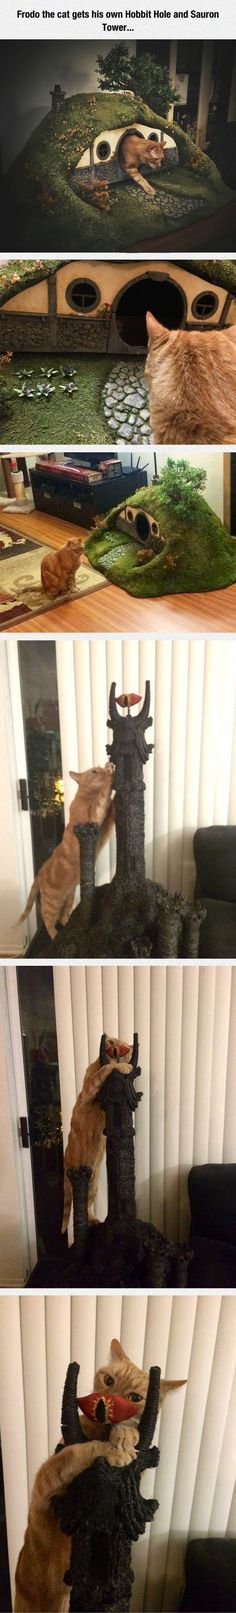 This is genius....also, Sauron Tower? don't you just mean Barad Dur?